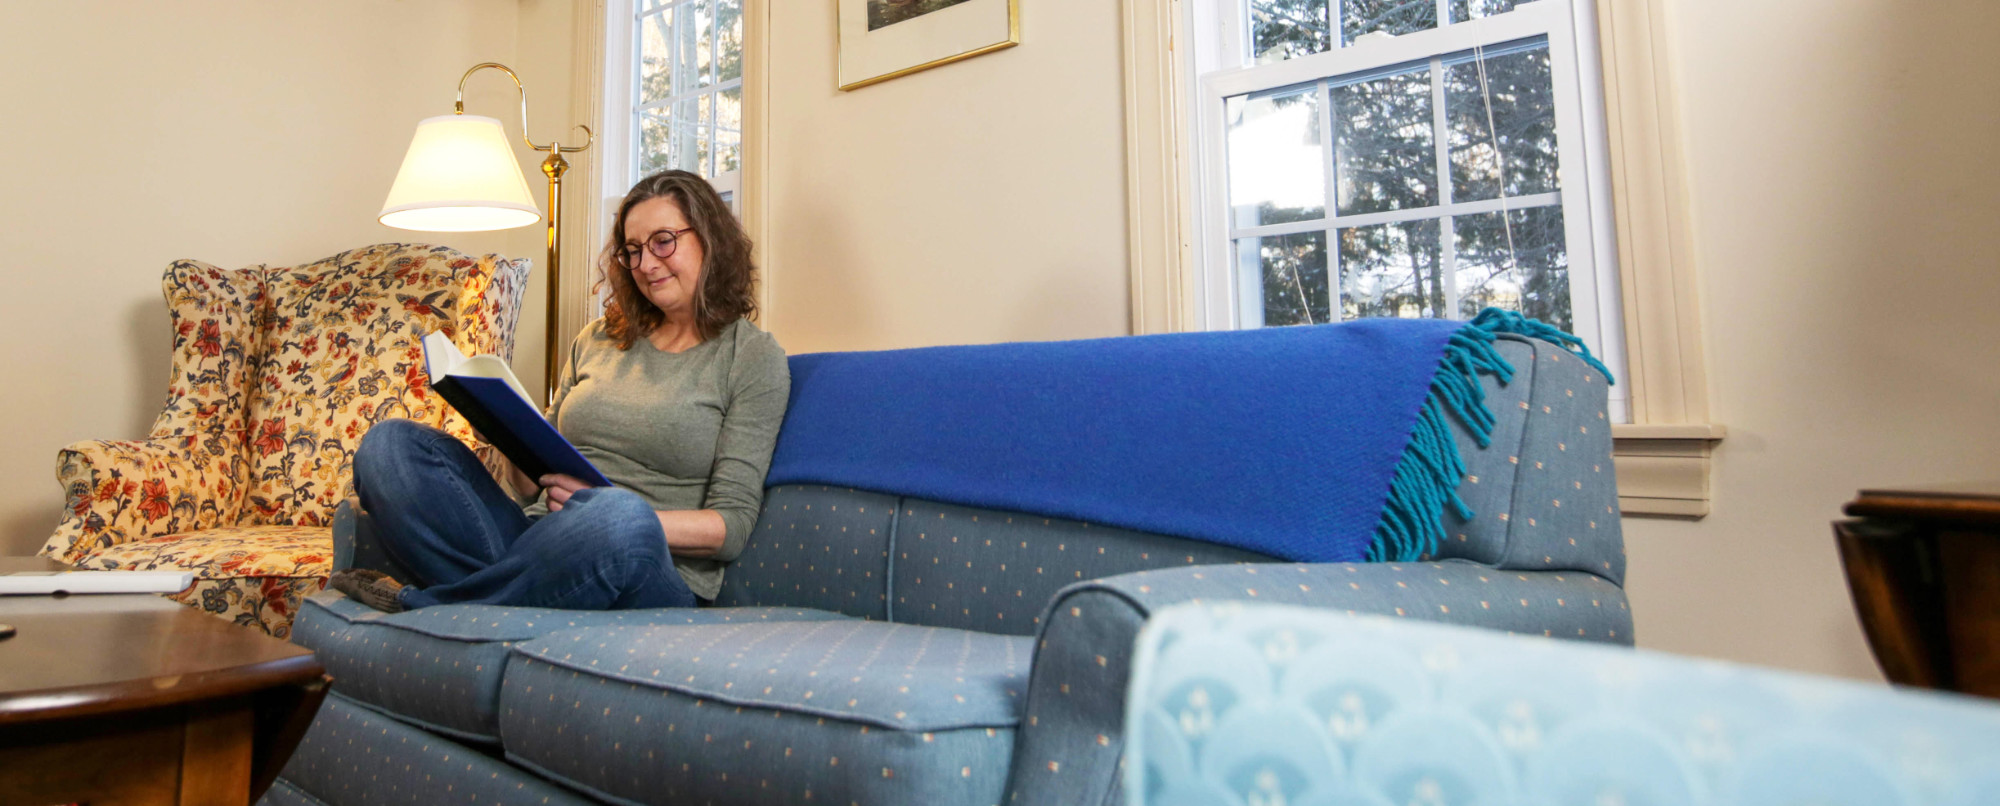 A woman reading while sitting on her living room couch